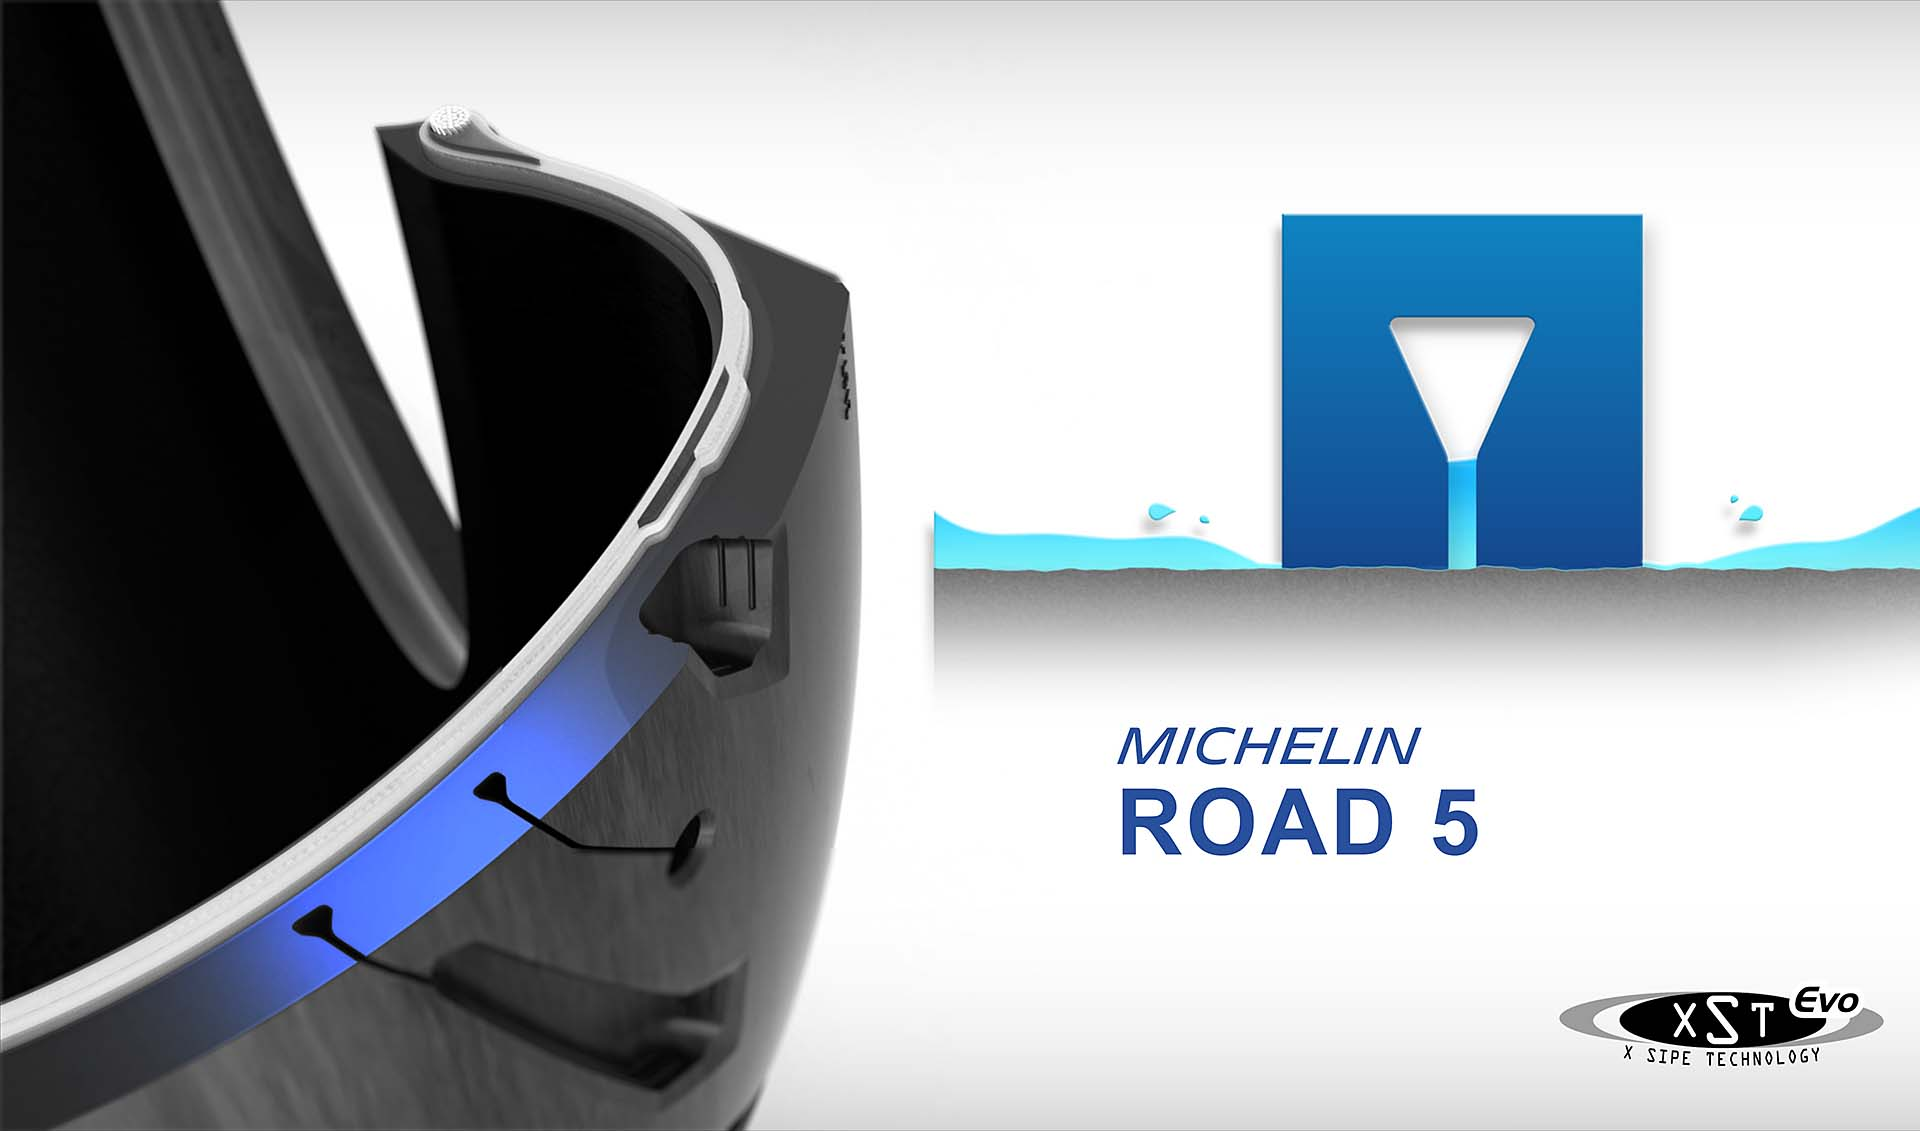 Michelin Road 5 - XST Evo